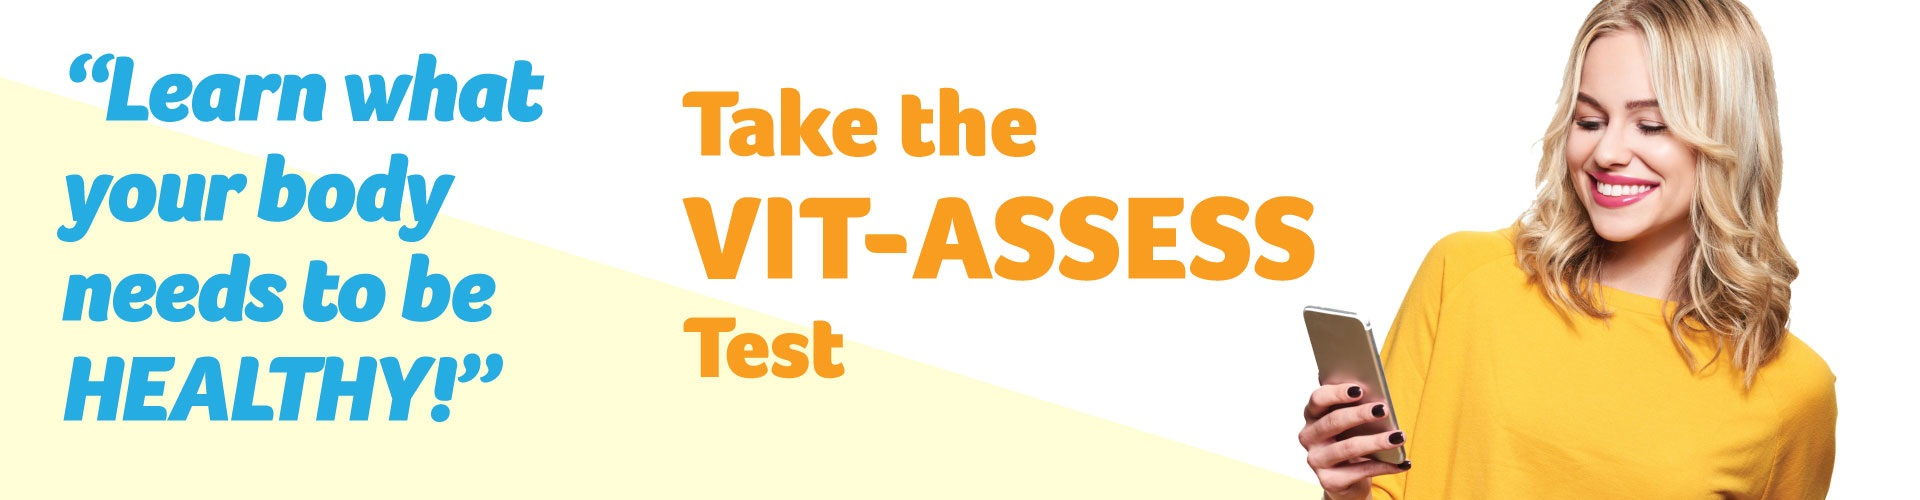 VitAssess